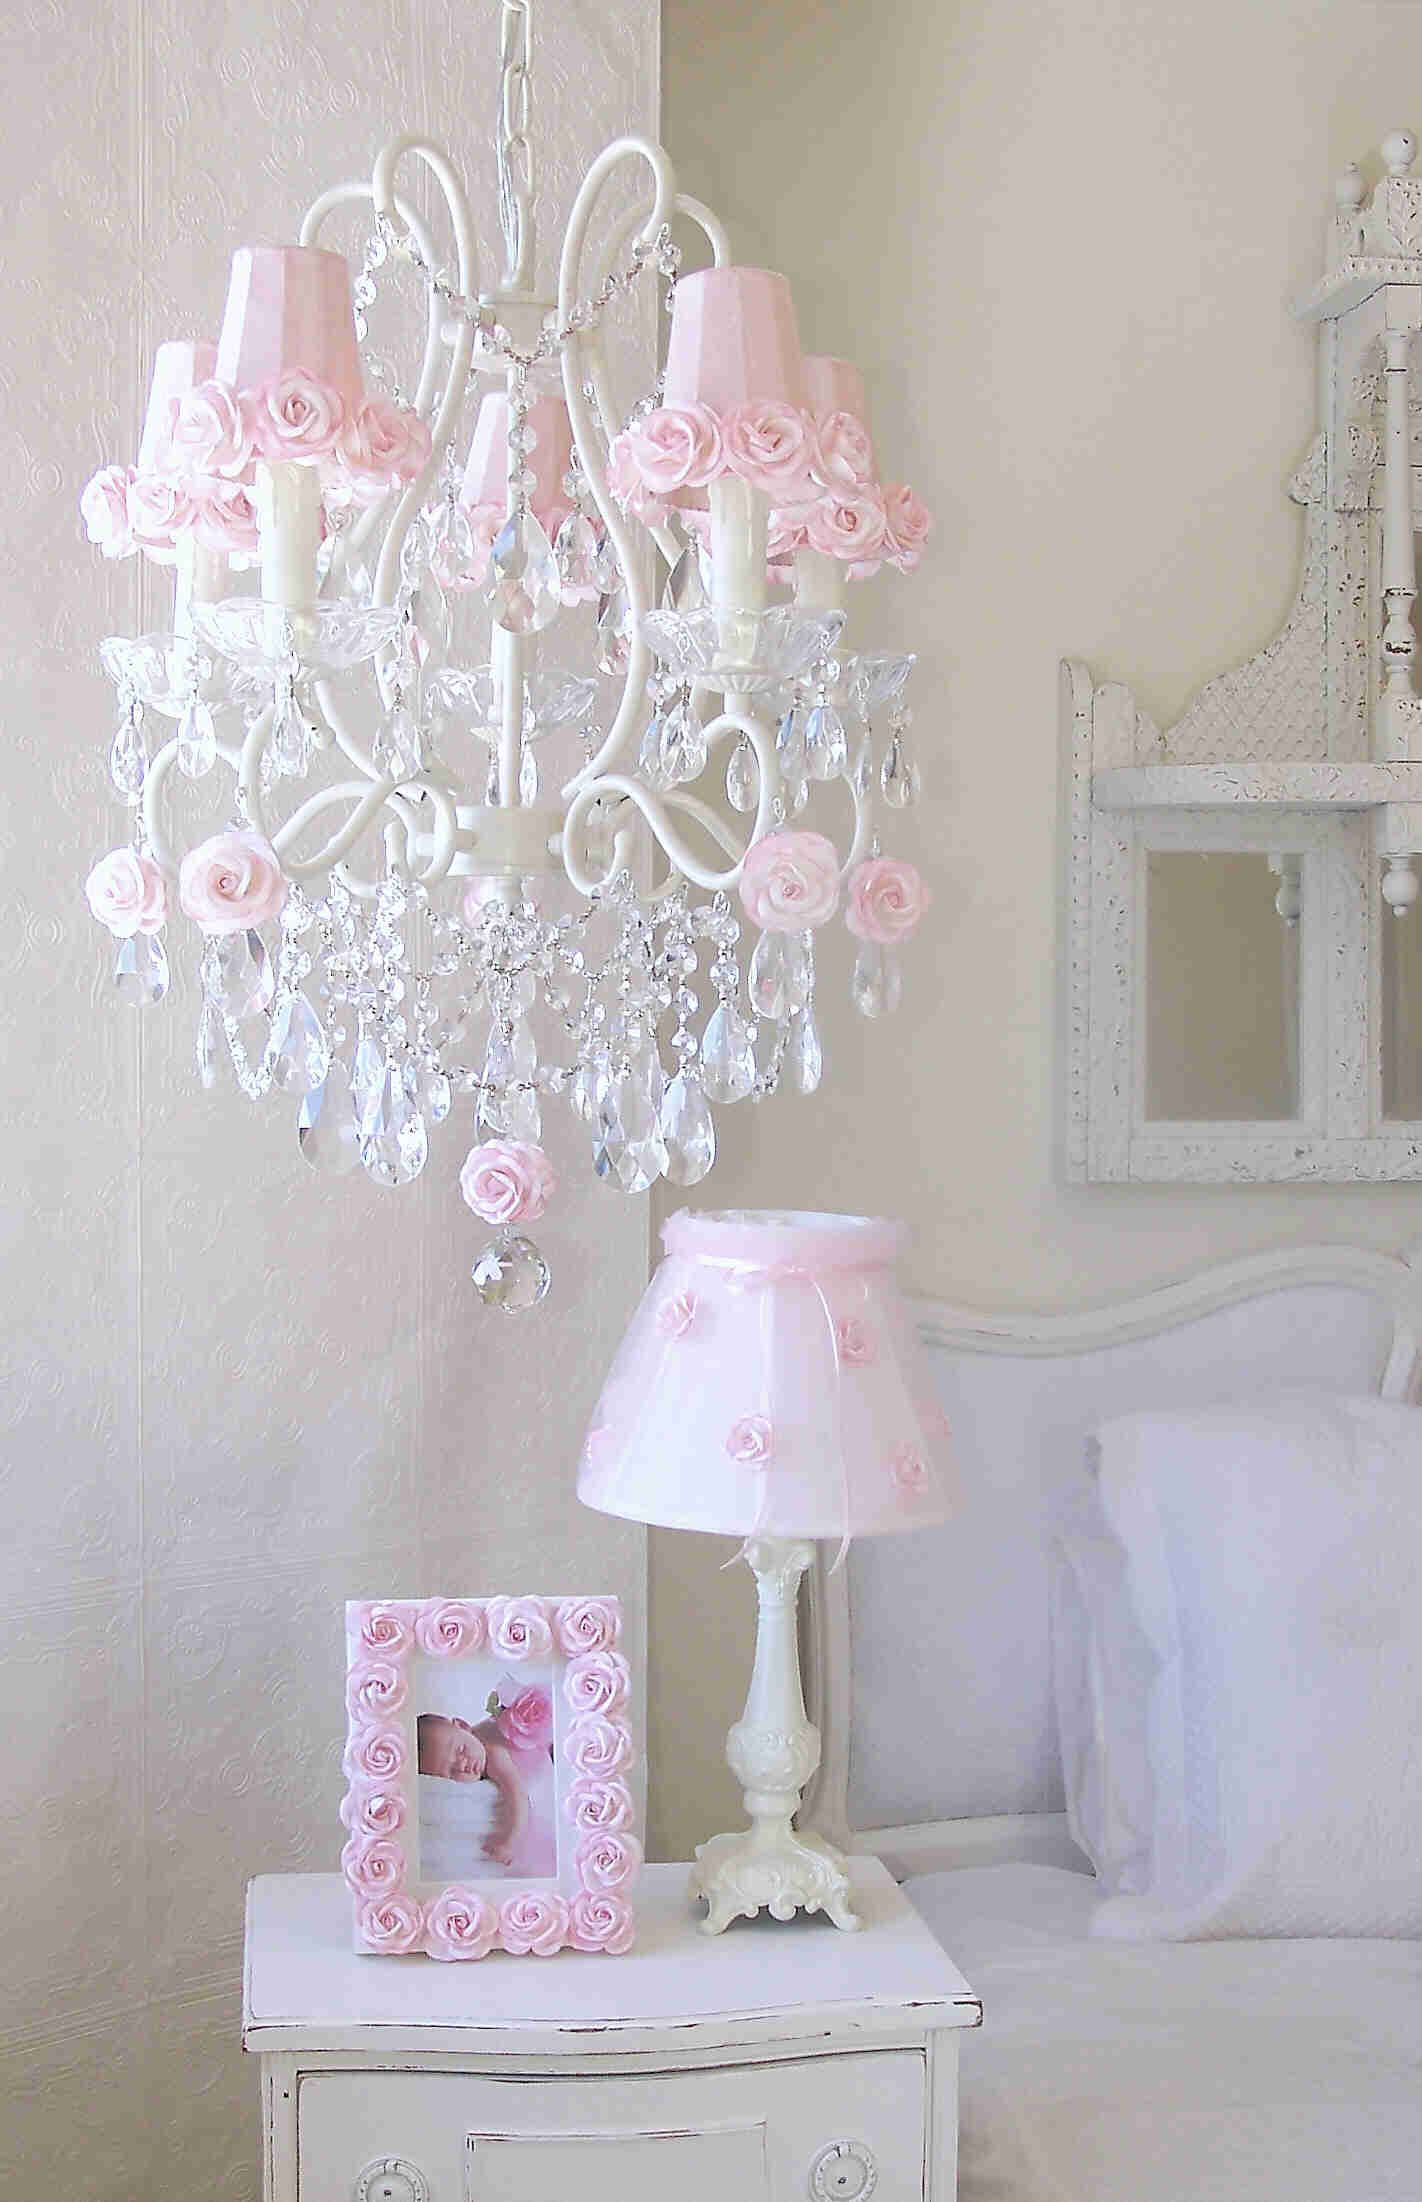 5 light chandelier with pink rose shades shabby daughters room buy your 5 light chandelier with pink rose shades here the 5 light chandelier with pink rose shades is a lovely vintage inspired design arubaitofo Image collections